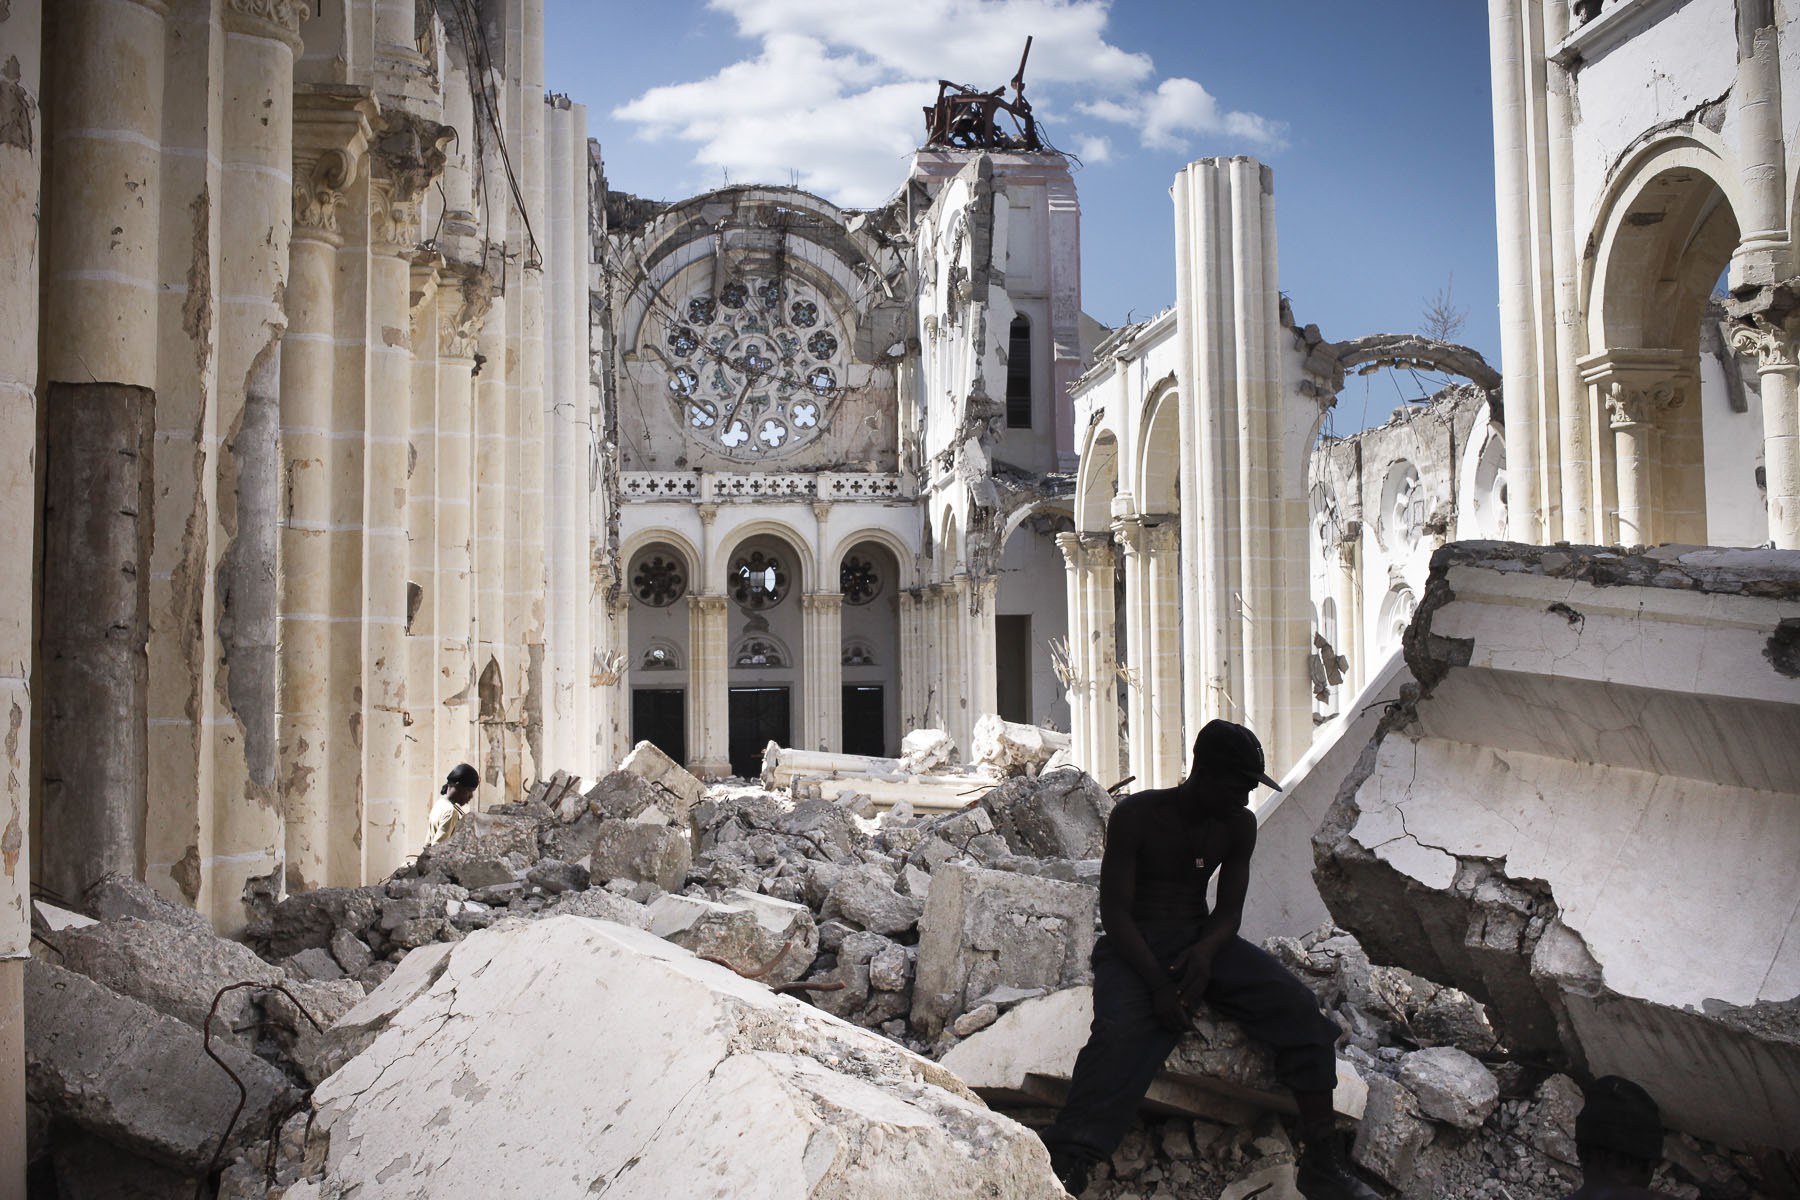 The ruins of the cathedral damaged during the January 12, 2010 earthquake on Wednesday, November 24, 2010